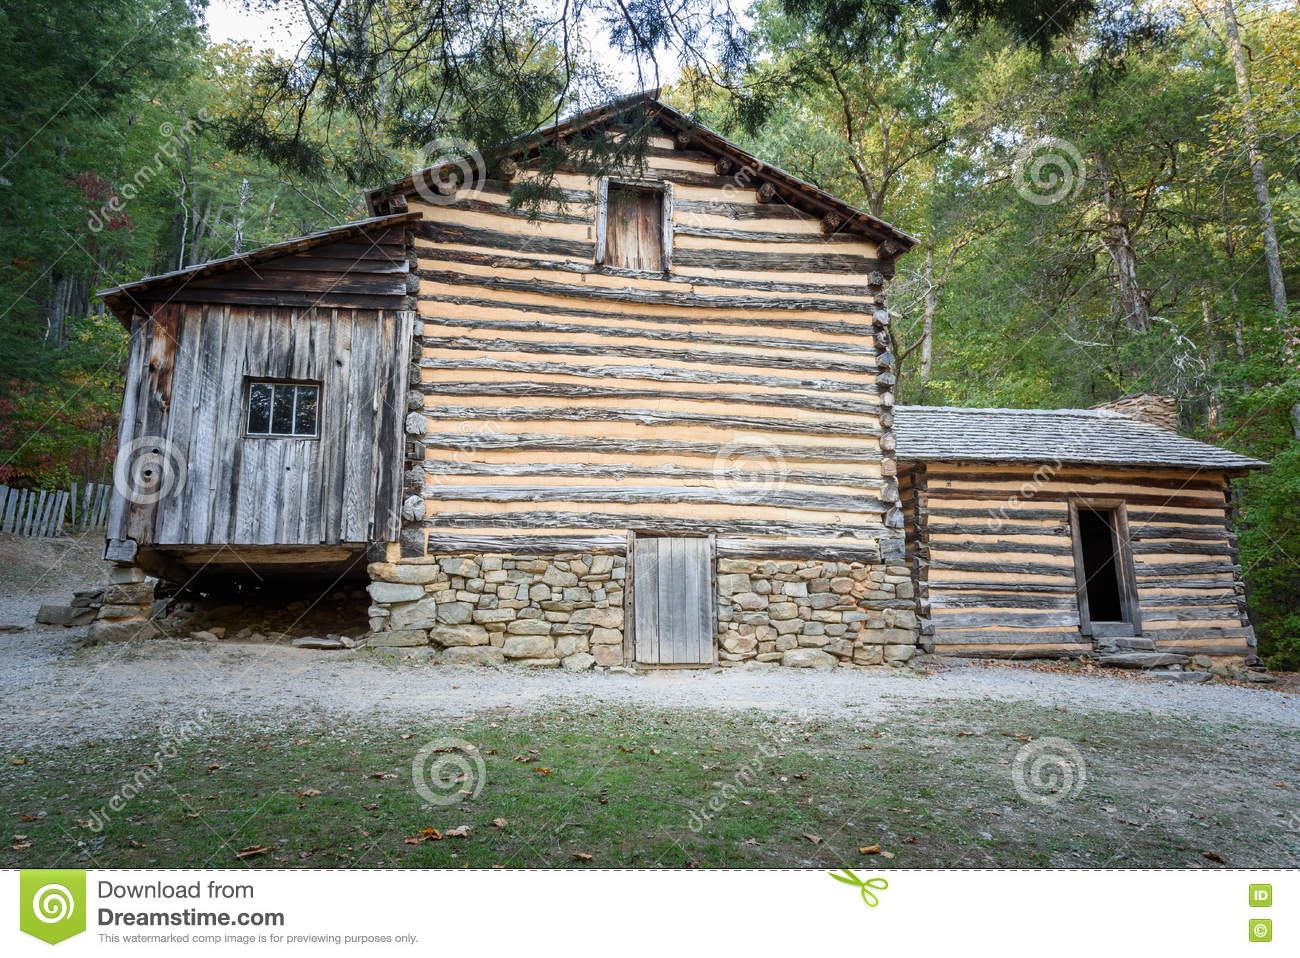 mountain cades pinterest f tennessee smoky smokey park and cabin in pin places visit national to cove c cabins